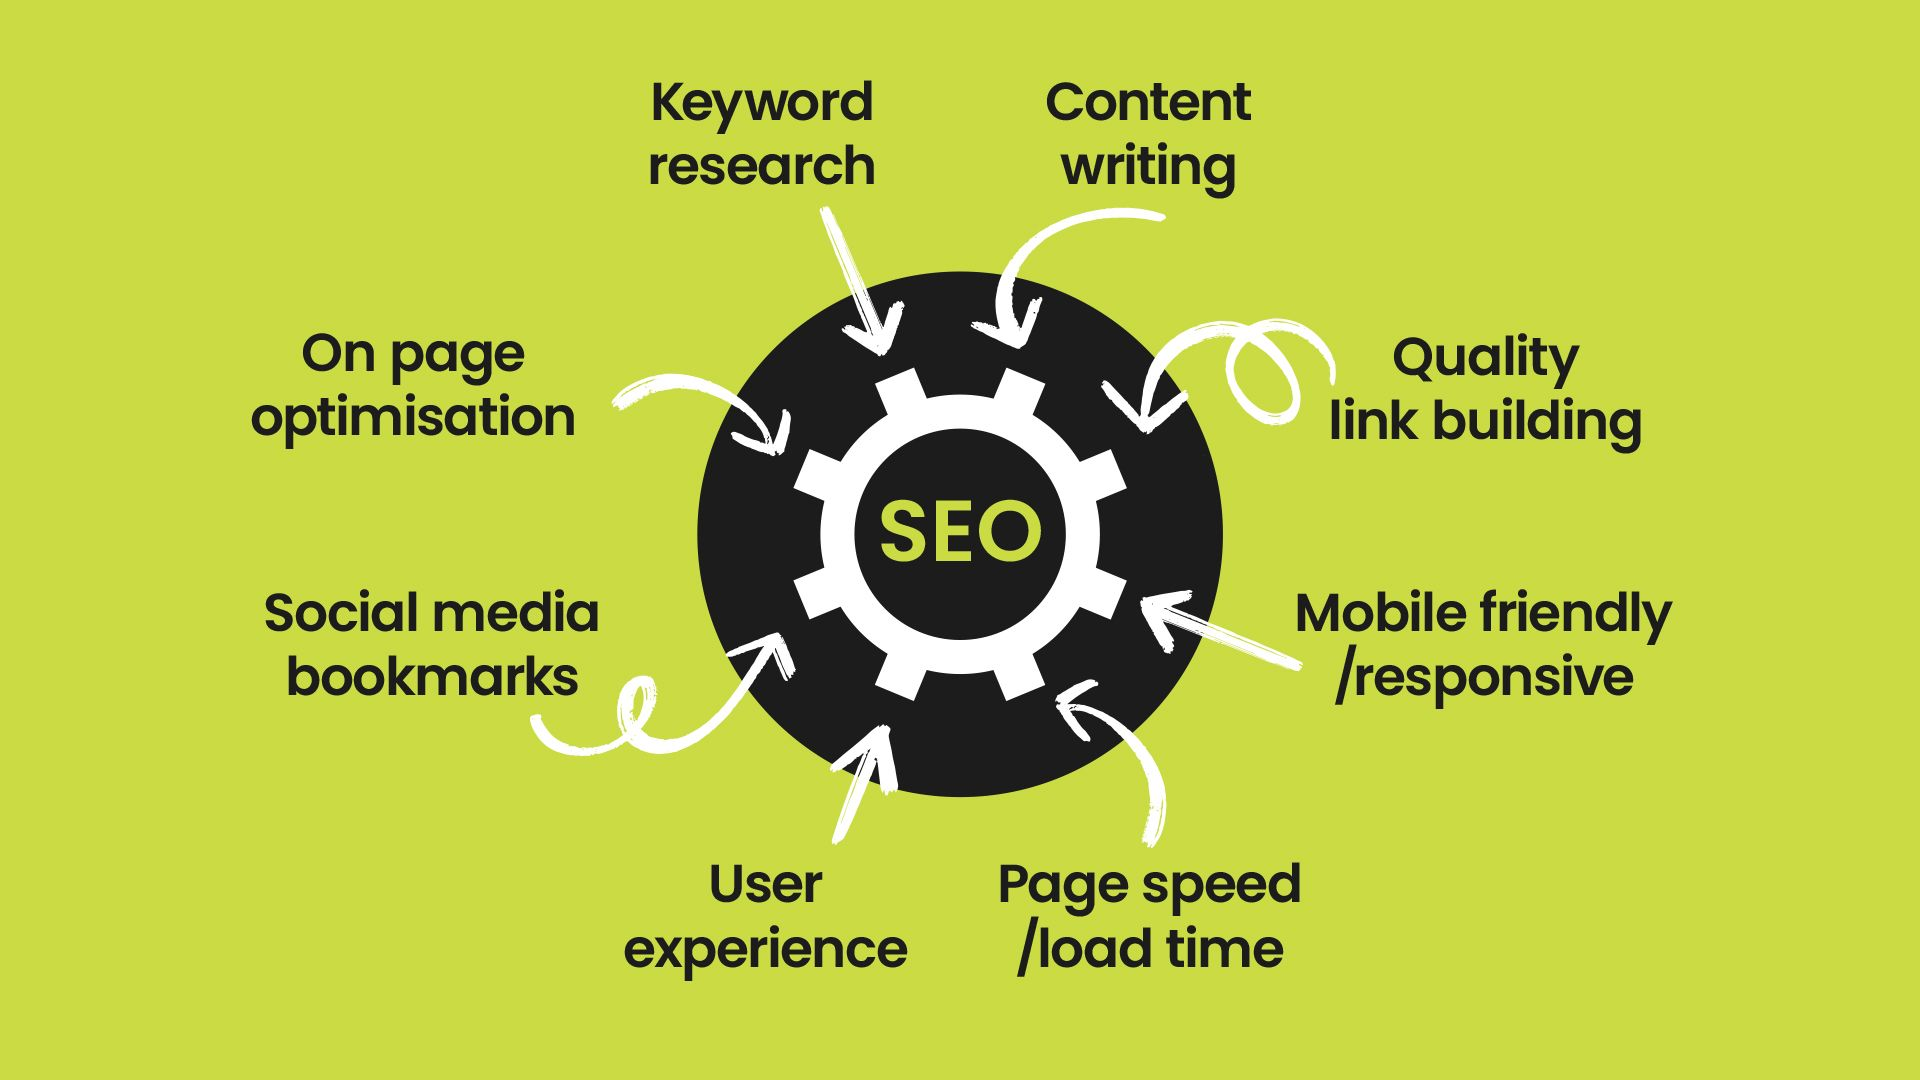 The who, why, what and wherre of SEO